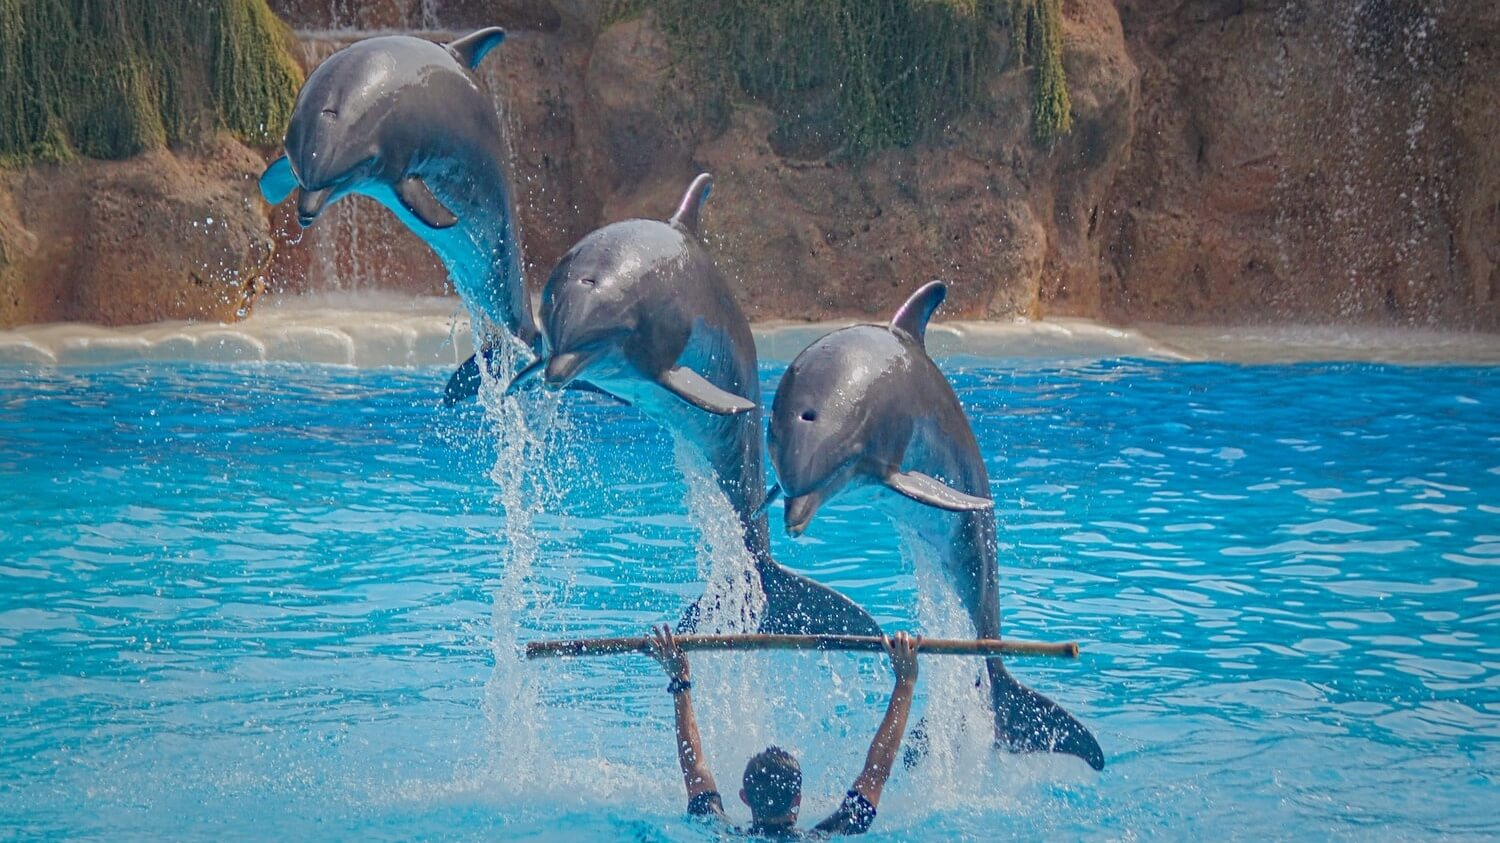 New Zealand Banned Swimming With Bottlenose Dolphins